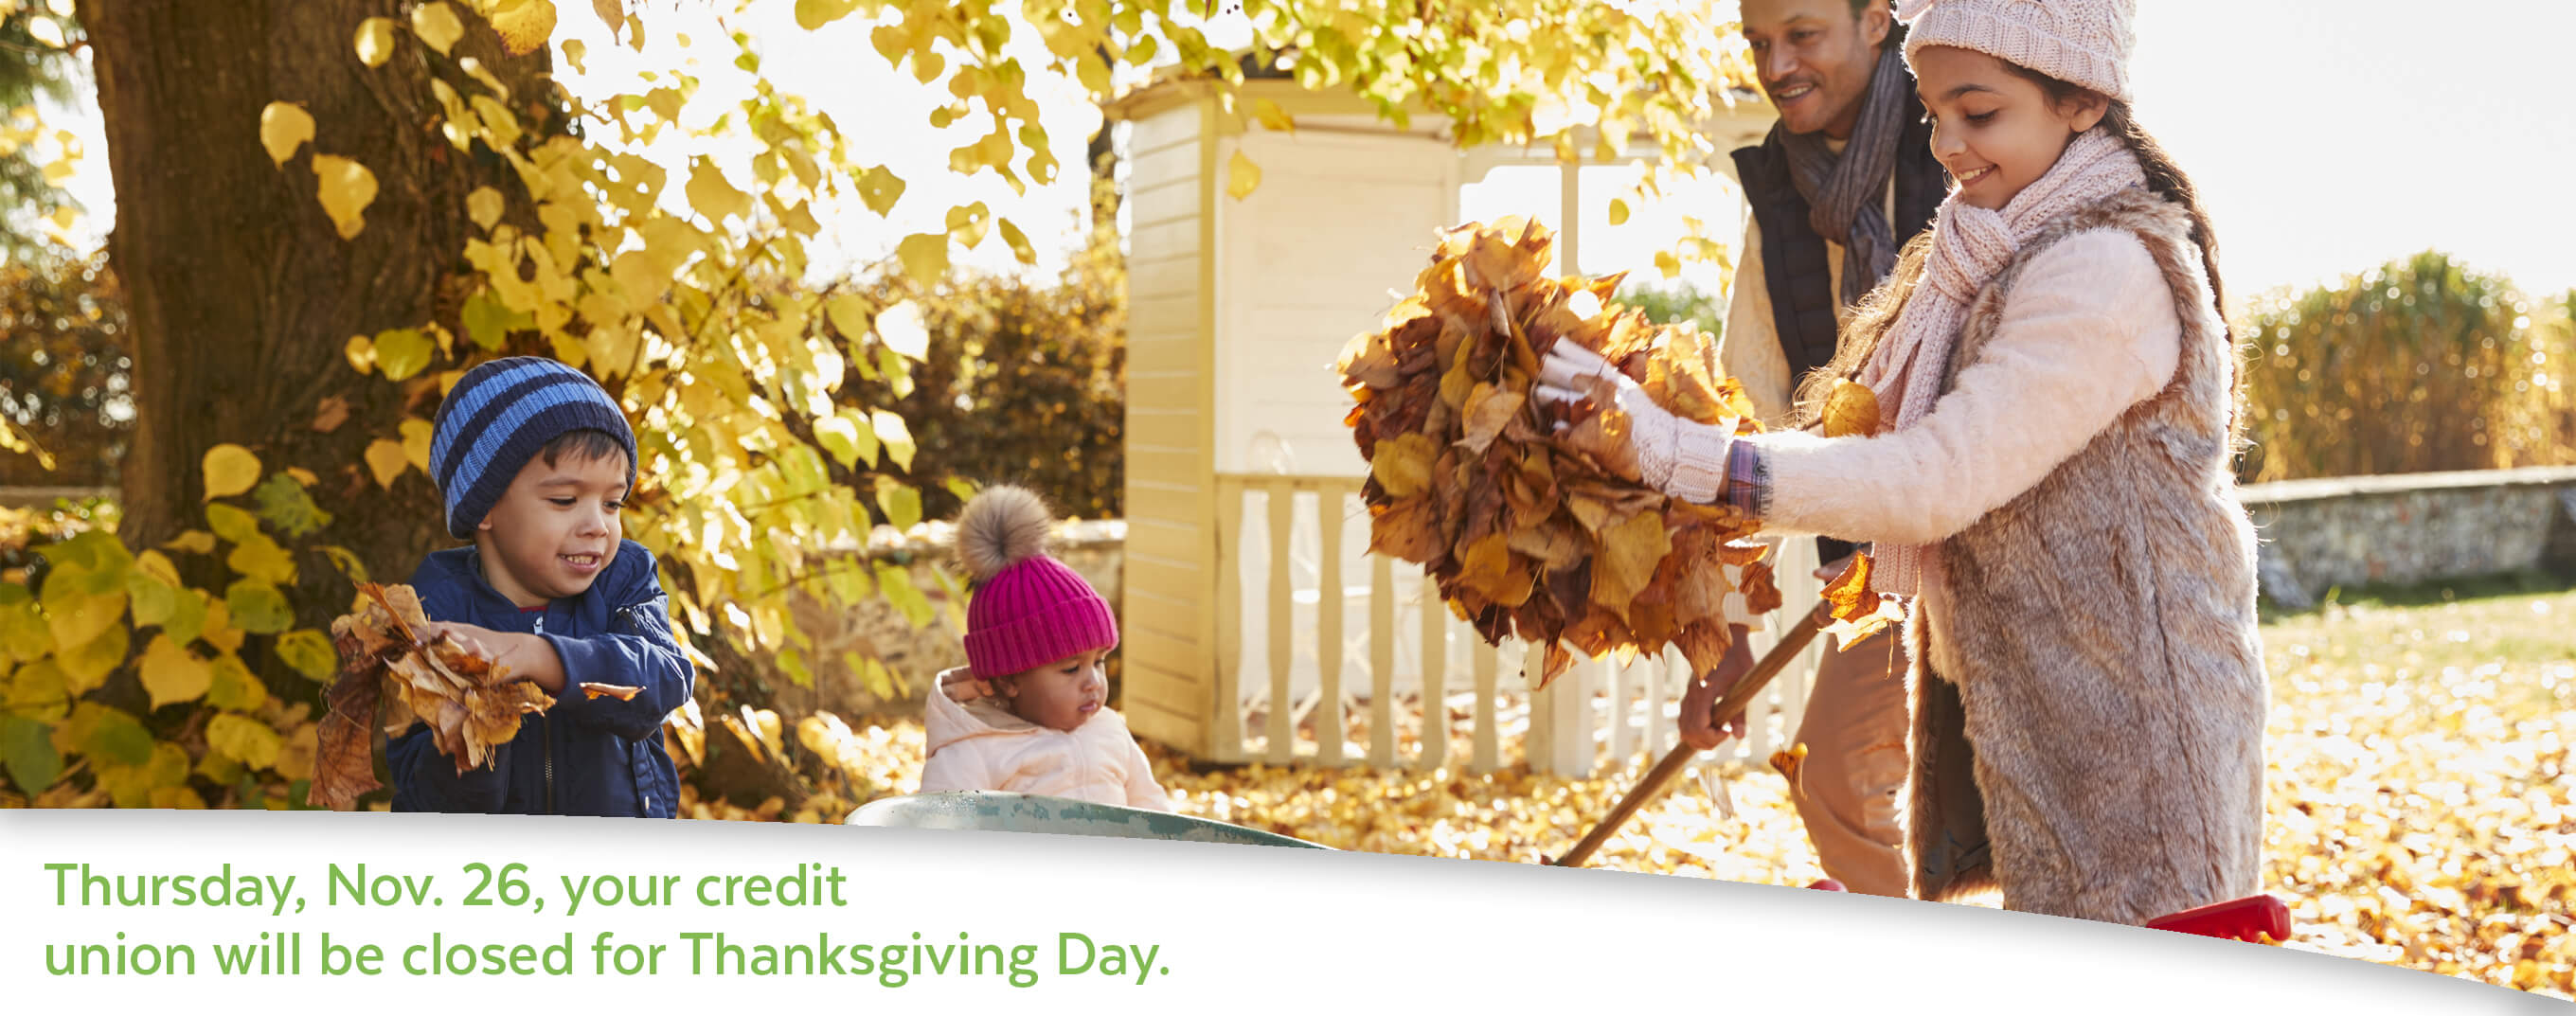 Nusenda Credit Union will be closed for Thanksgiving Day on Thursday, November 26.